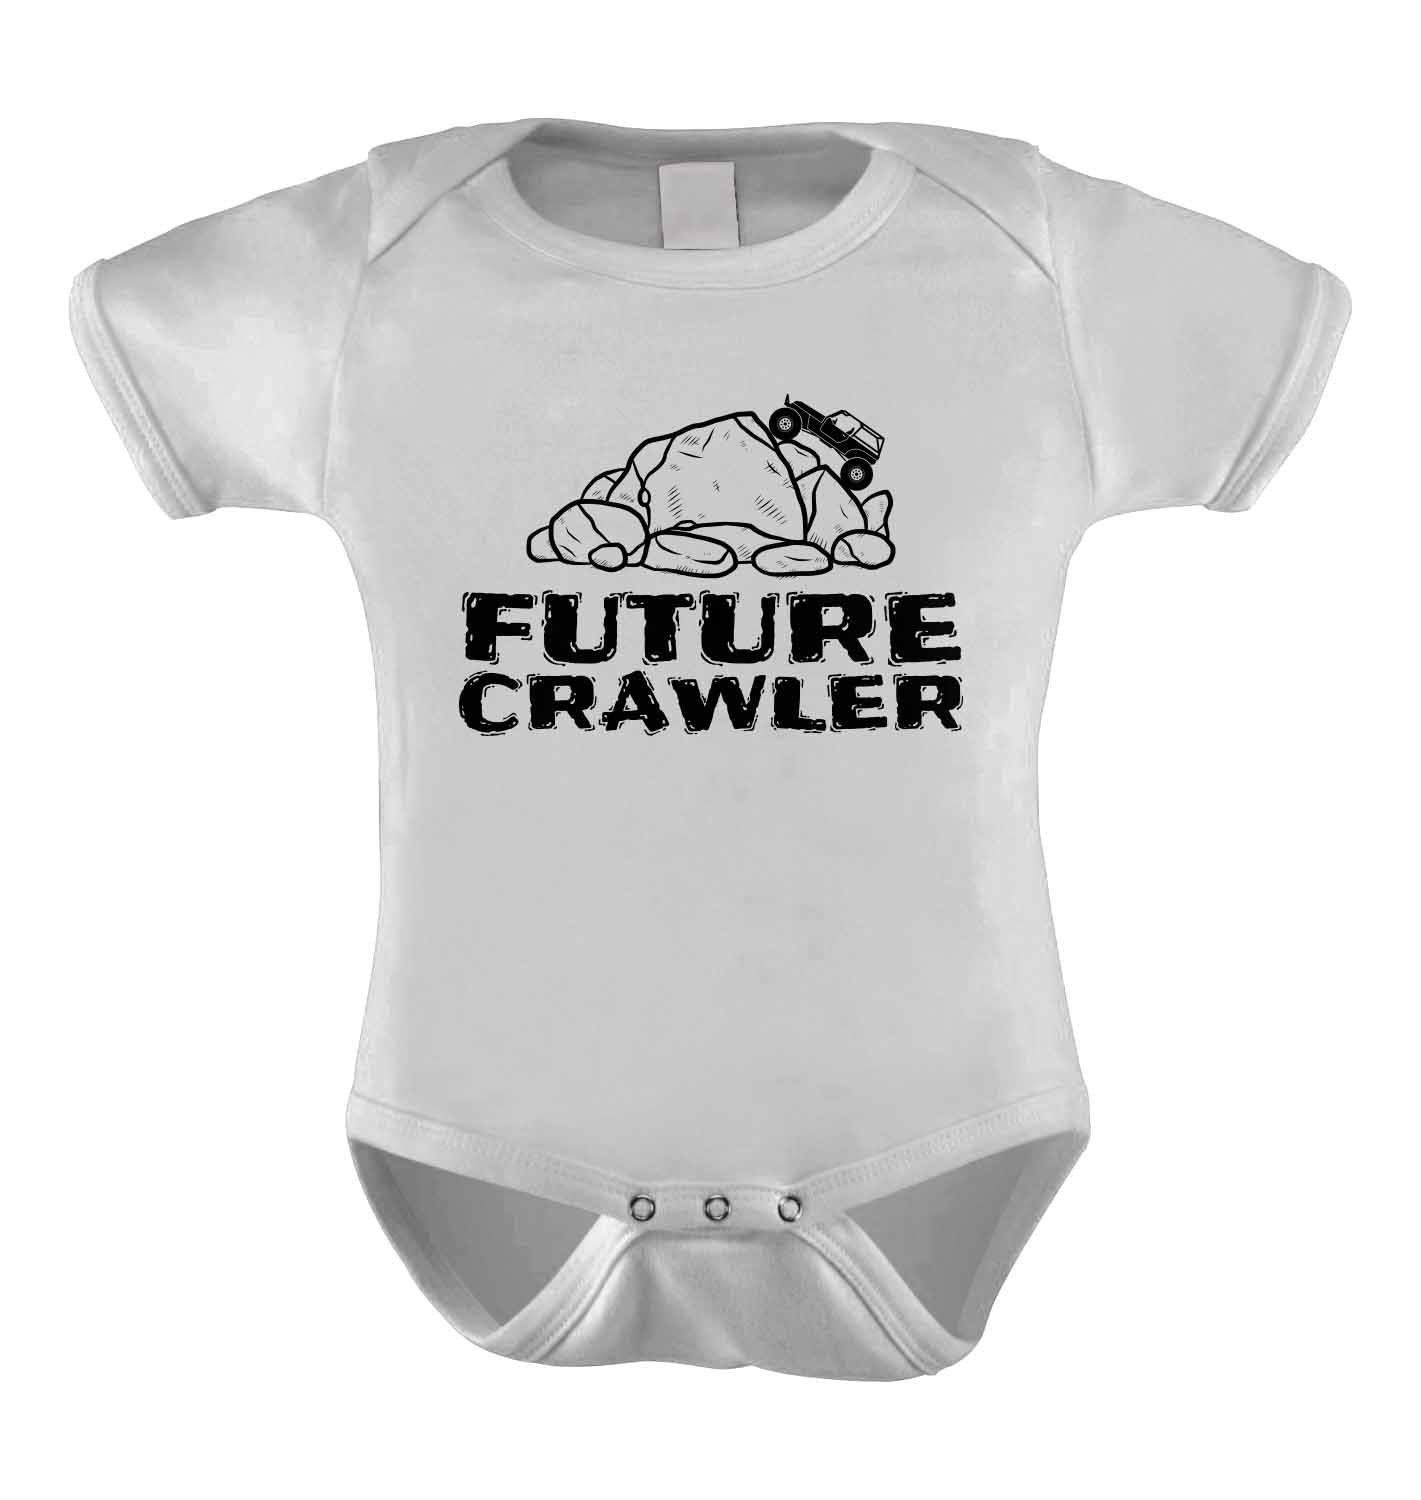 onsie-infant-jeep-shirt-onesie-future-crawler-jeep-youth-kids-white